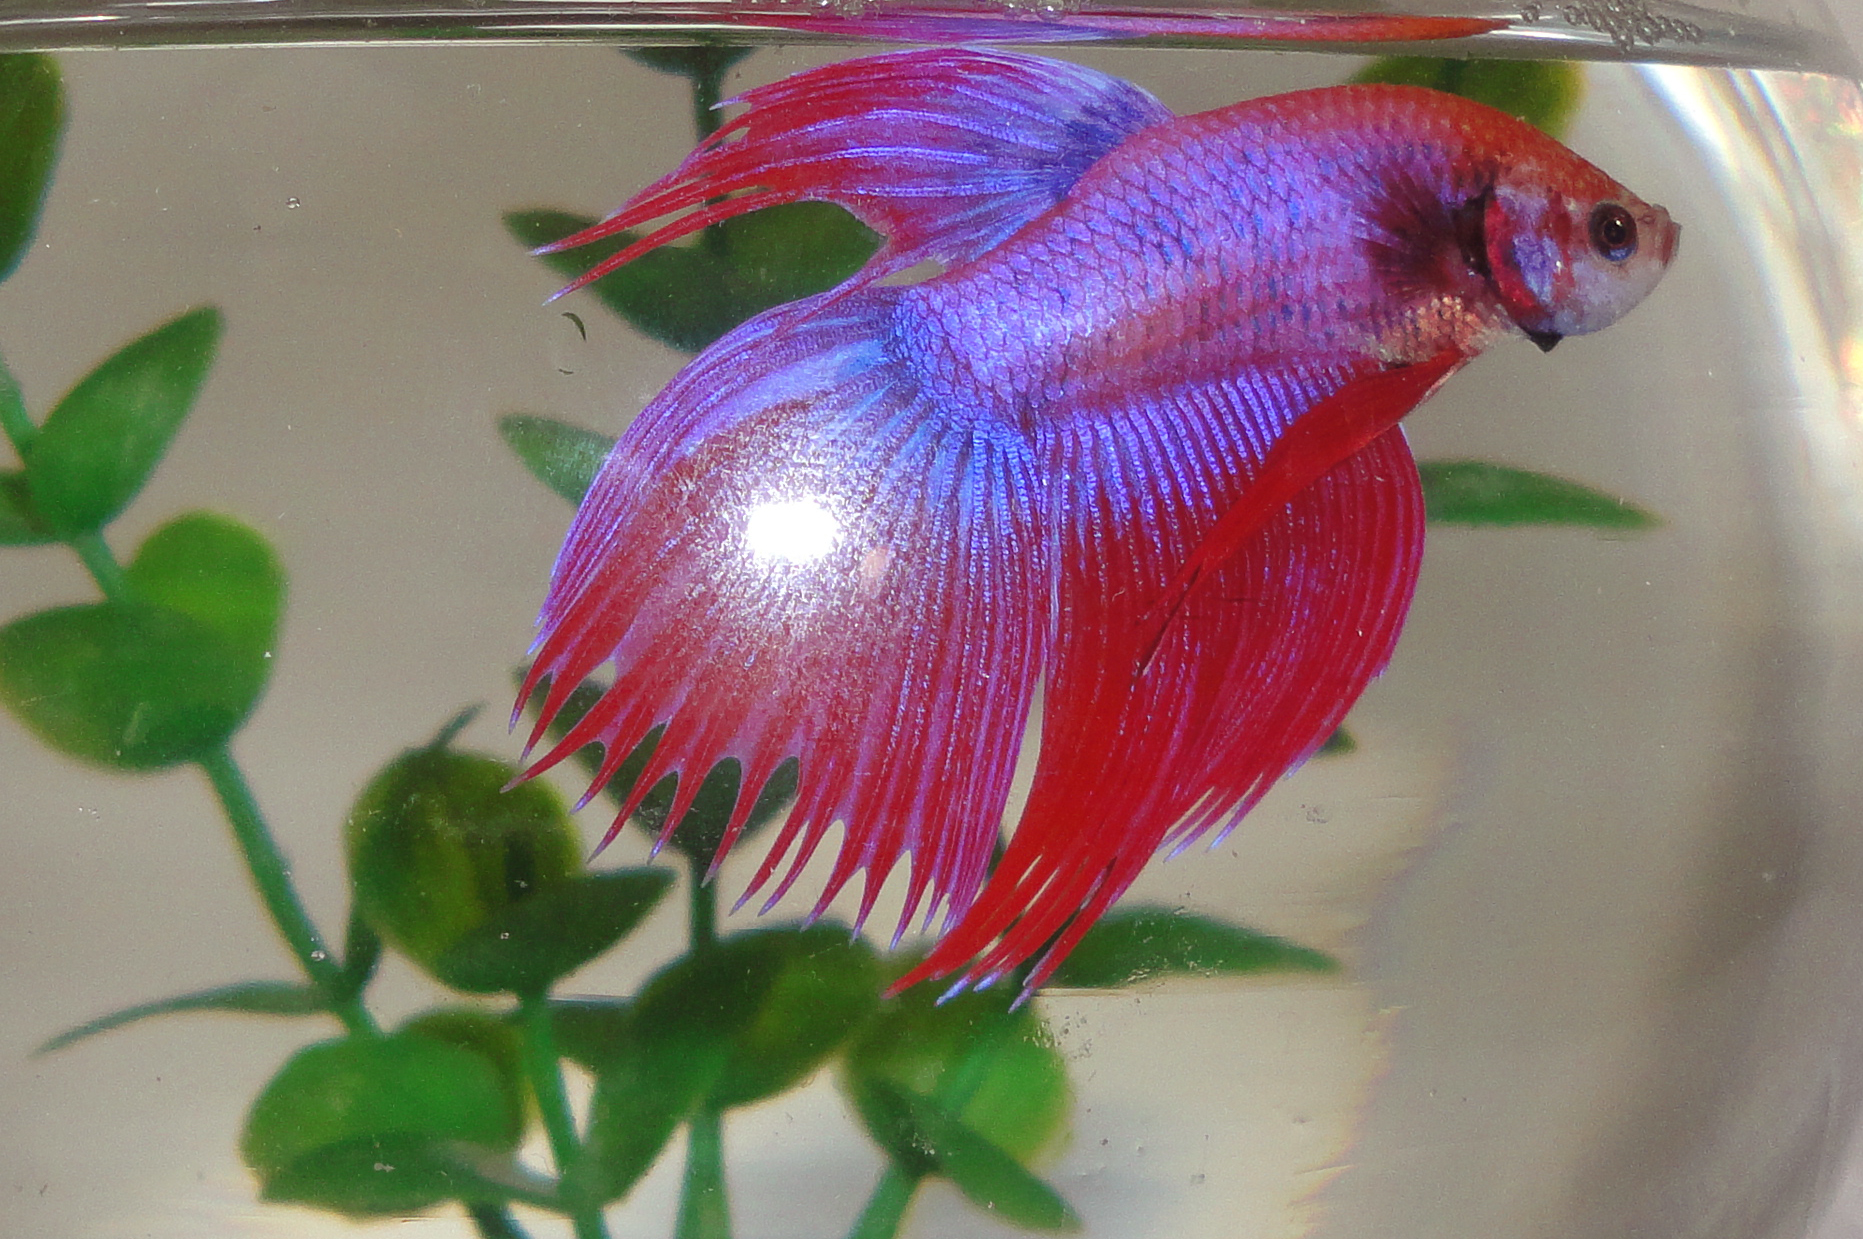 Crowntail betta fish or the fighter fish creativentechno for Crowntail betta fish